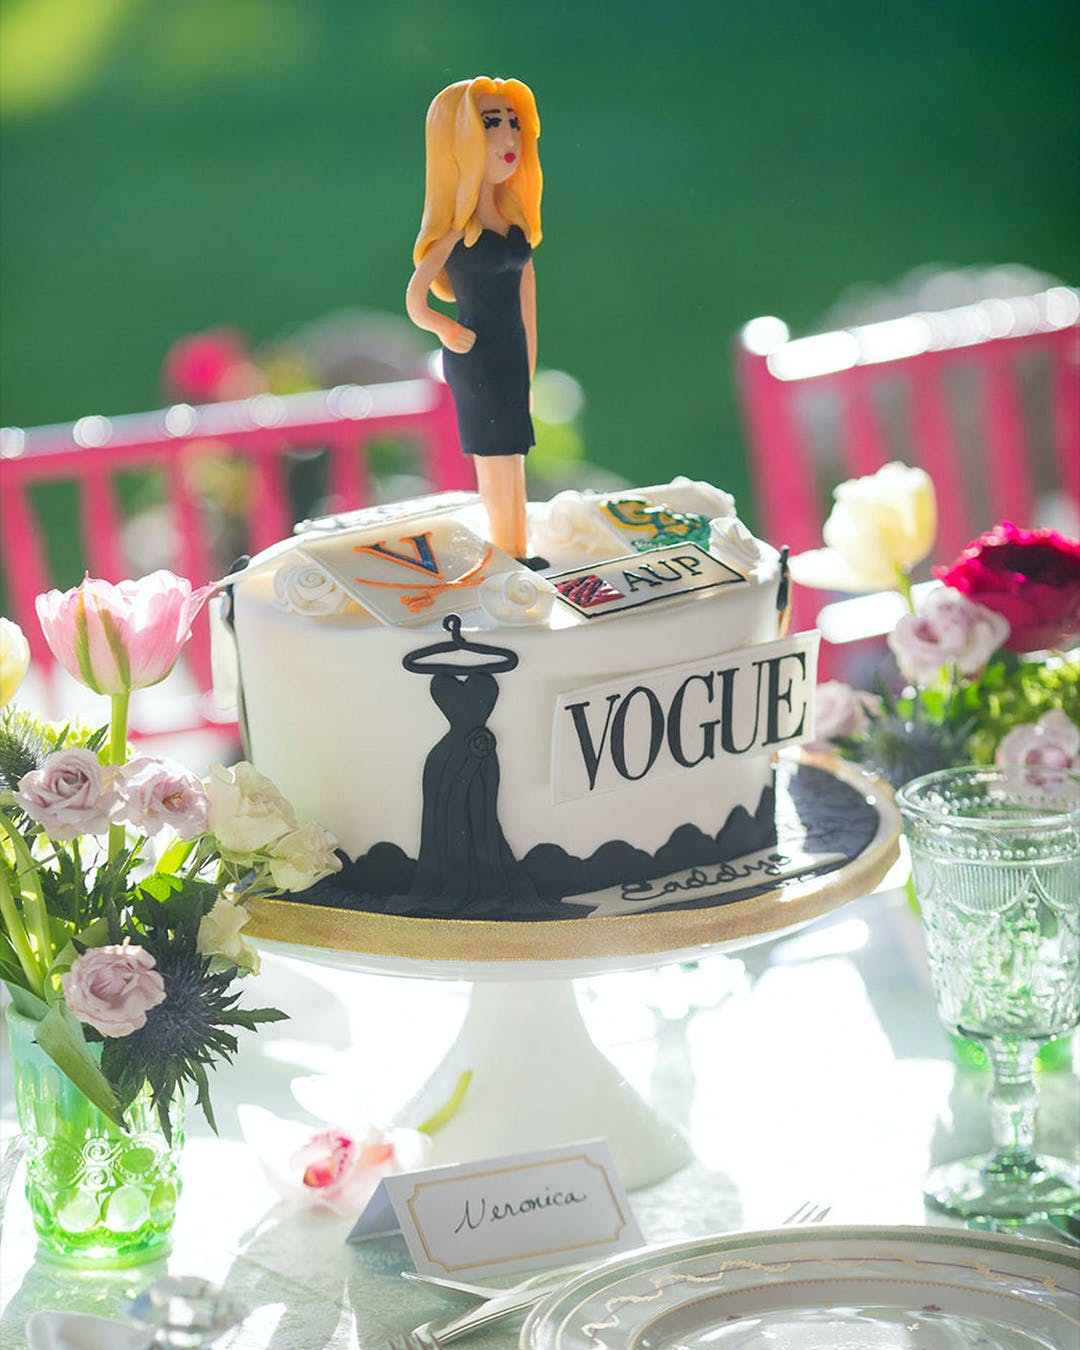 Vogue-themed cake centerpiece at engagement party | PartySlate